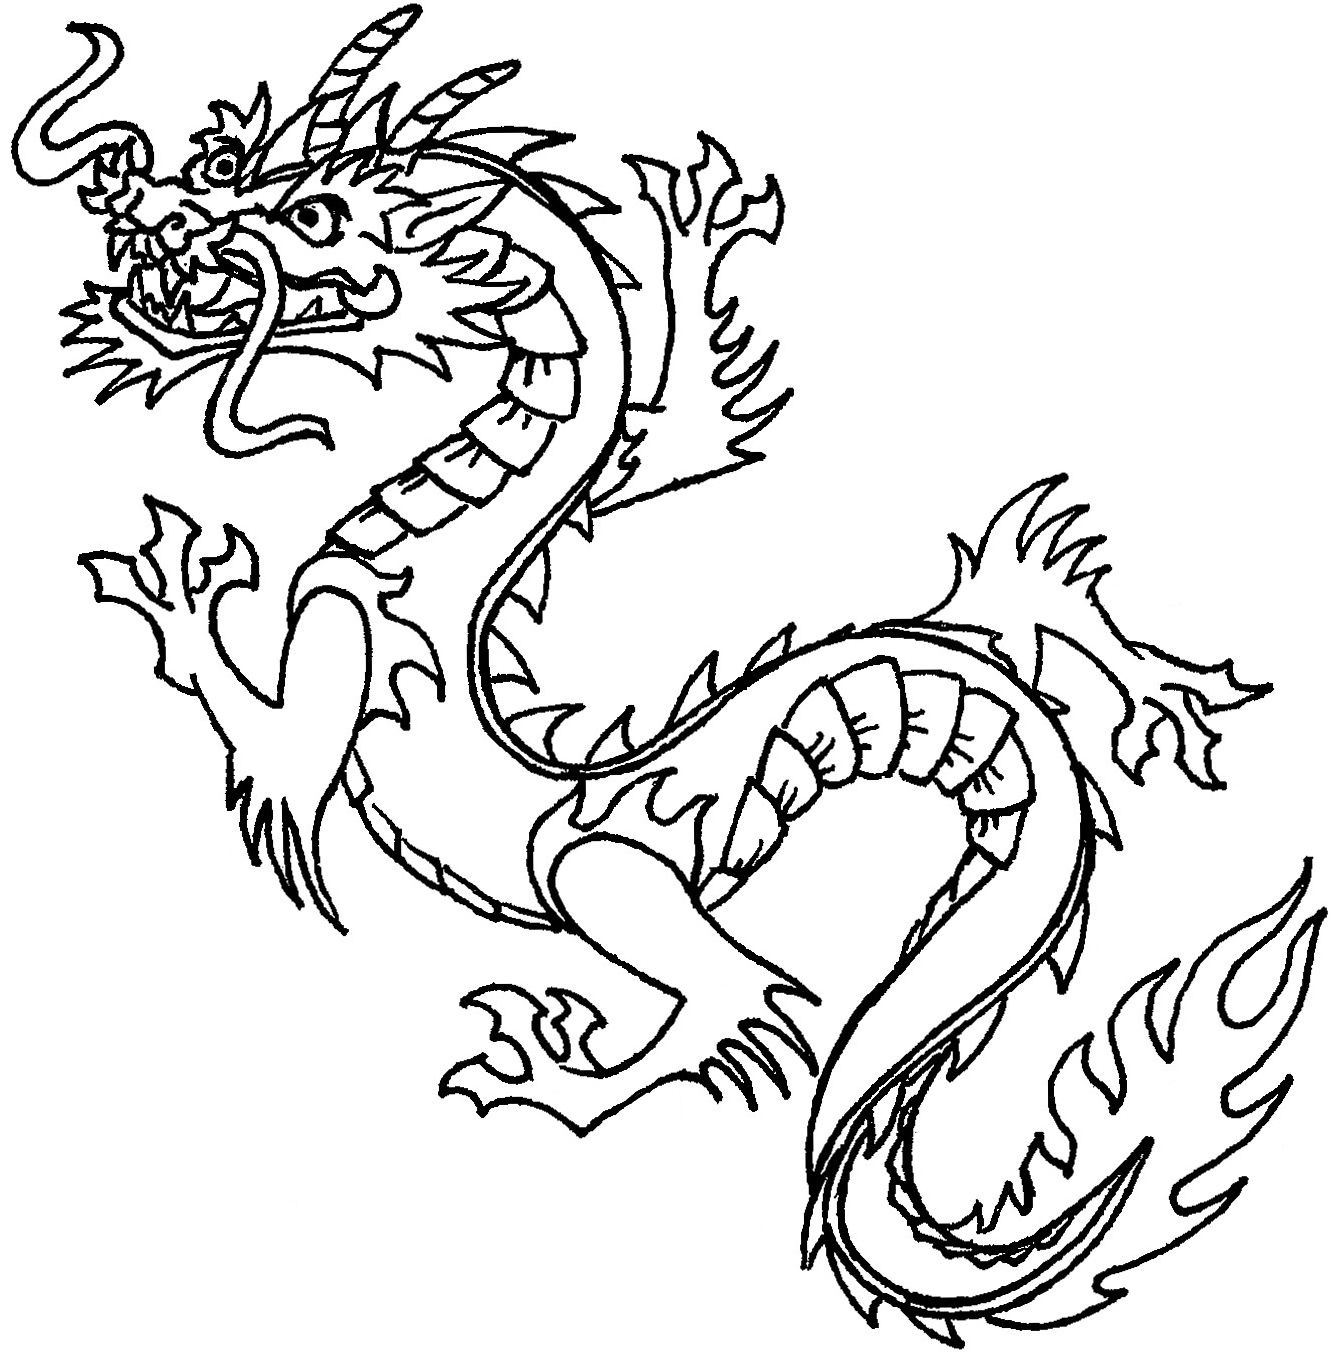 Free Printable Chinese Dragon Coloring Pages For Kids | Stencils - Free Printable Dragon Stencils